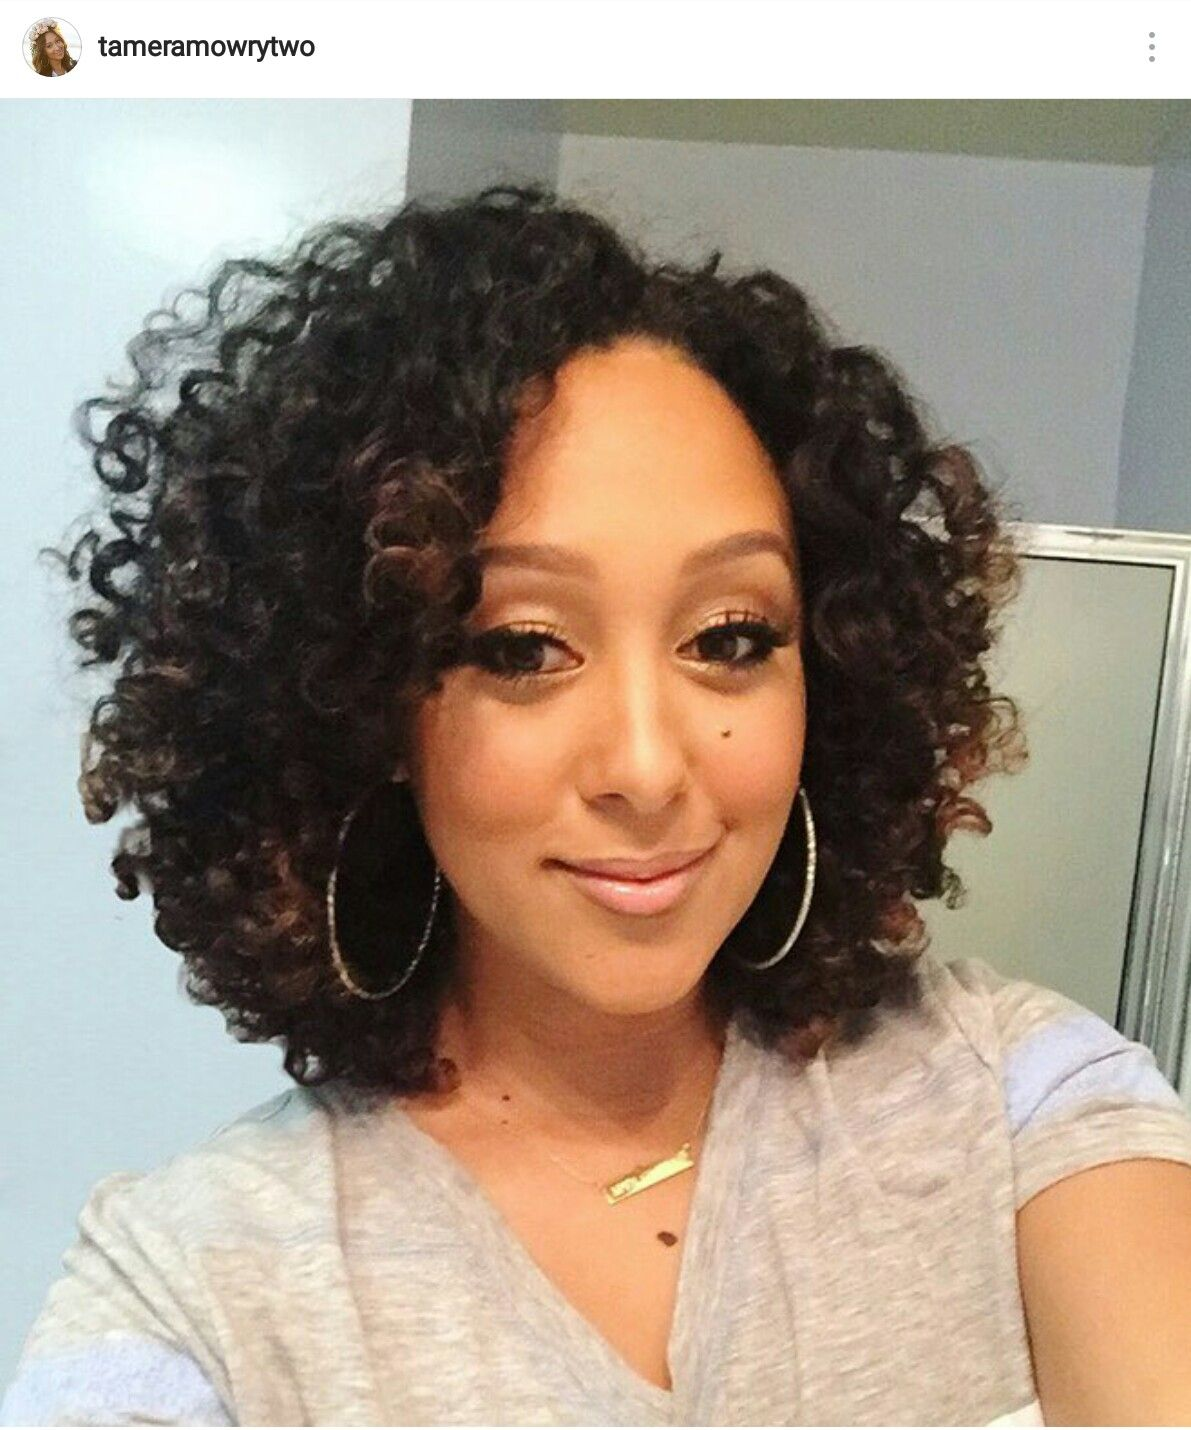 tamera mowry buns and updo's